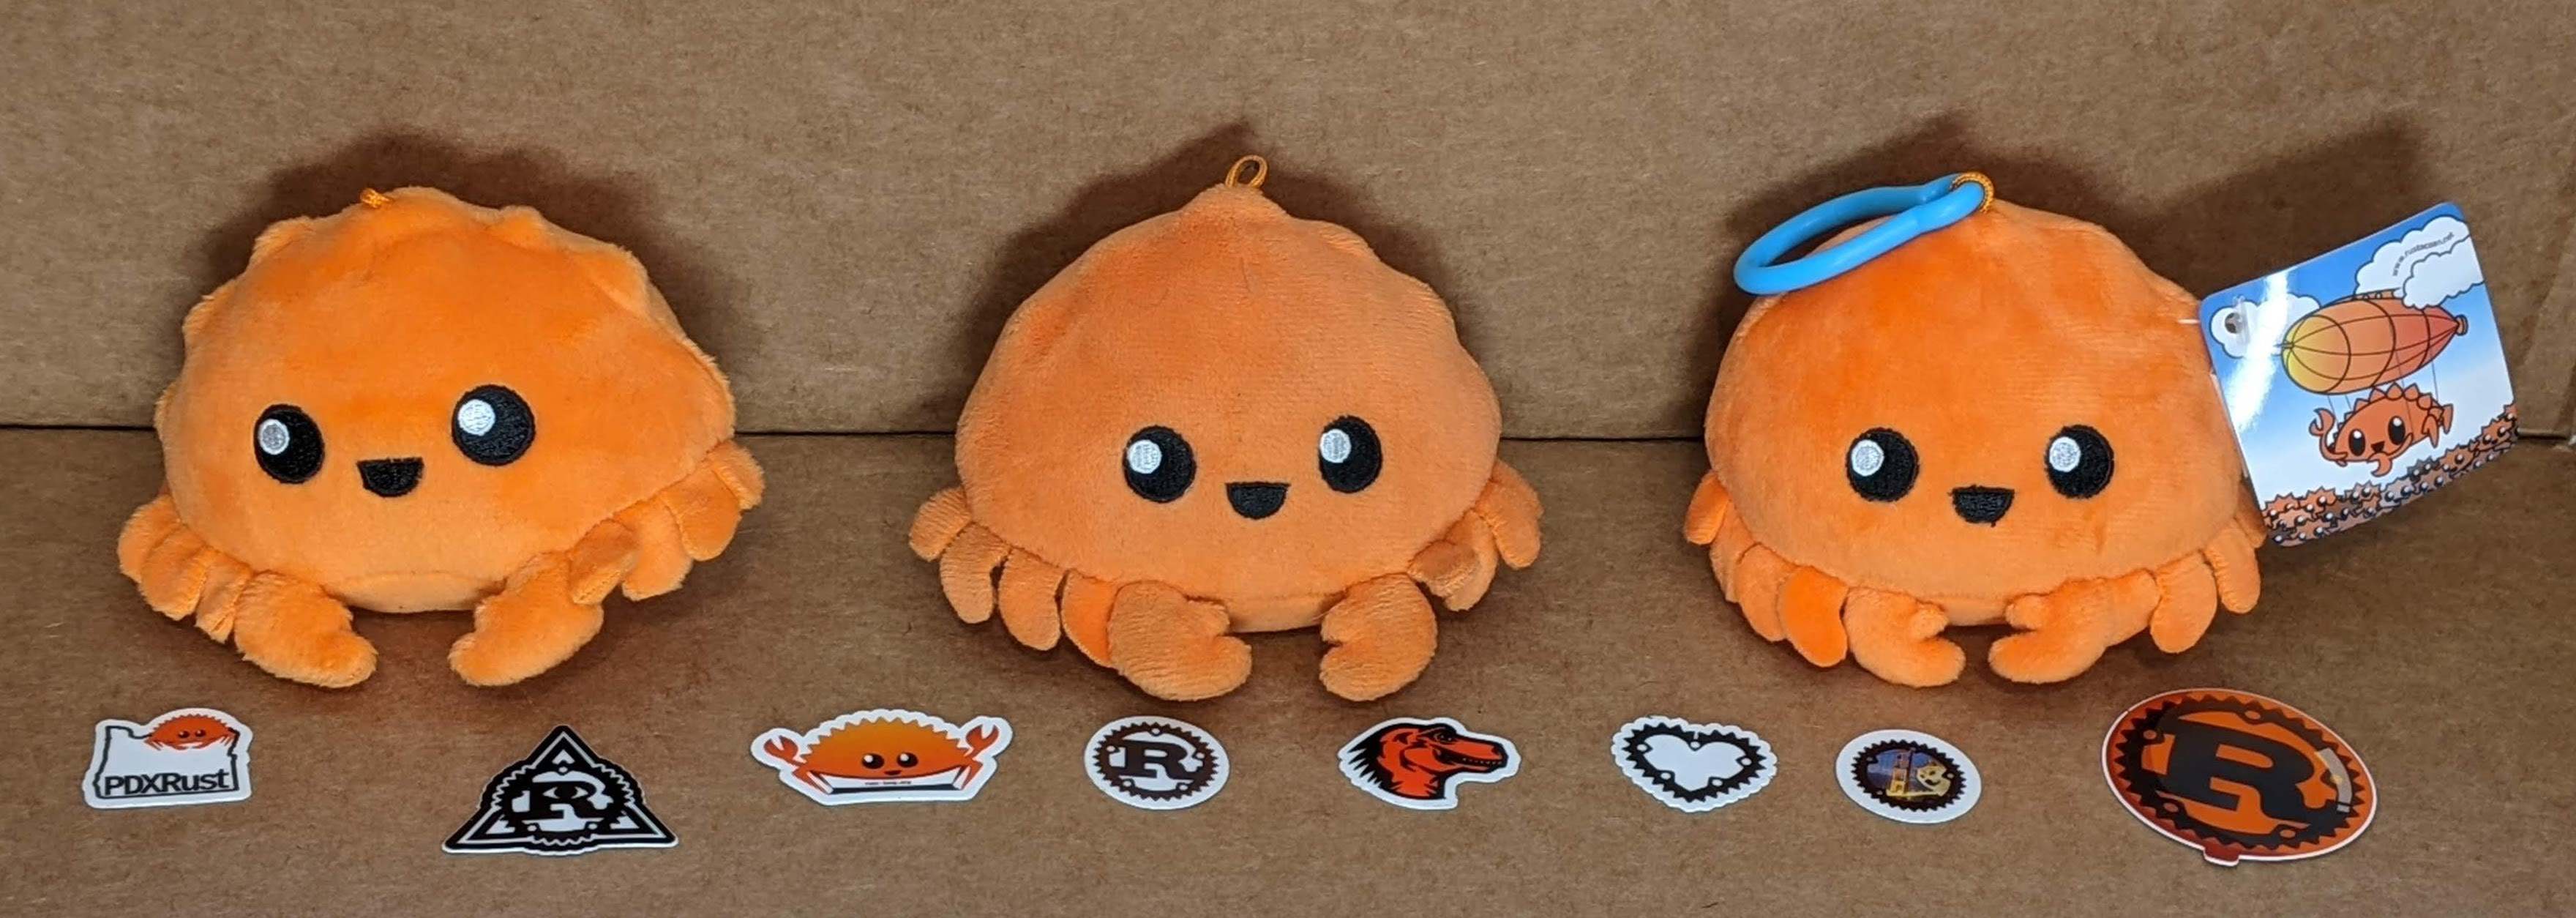 Ferris plushies and Rust stickers